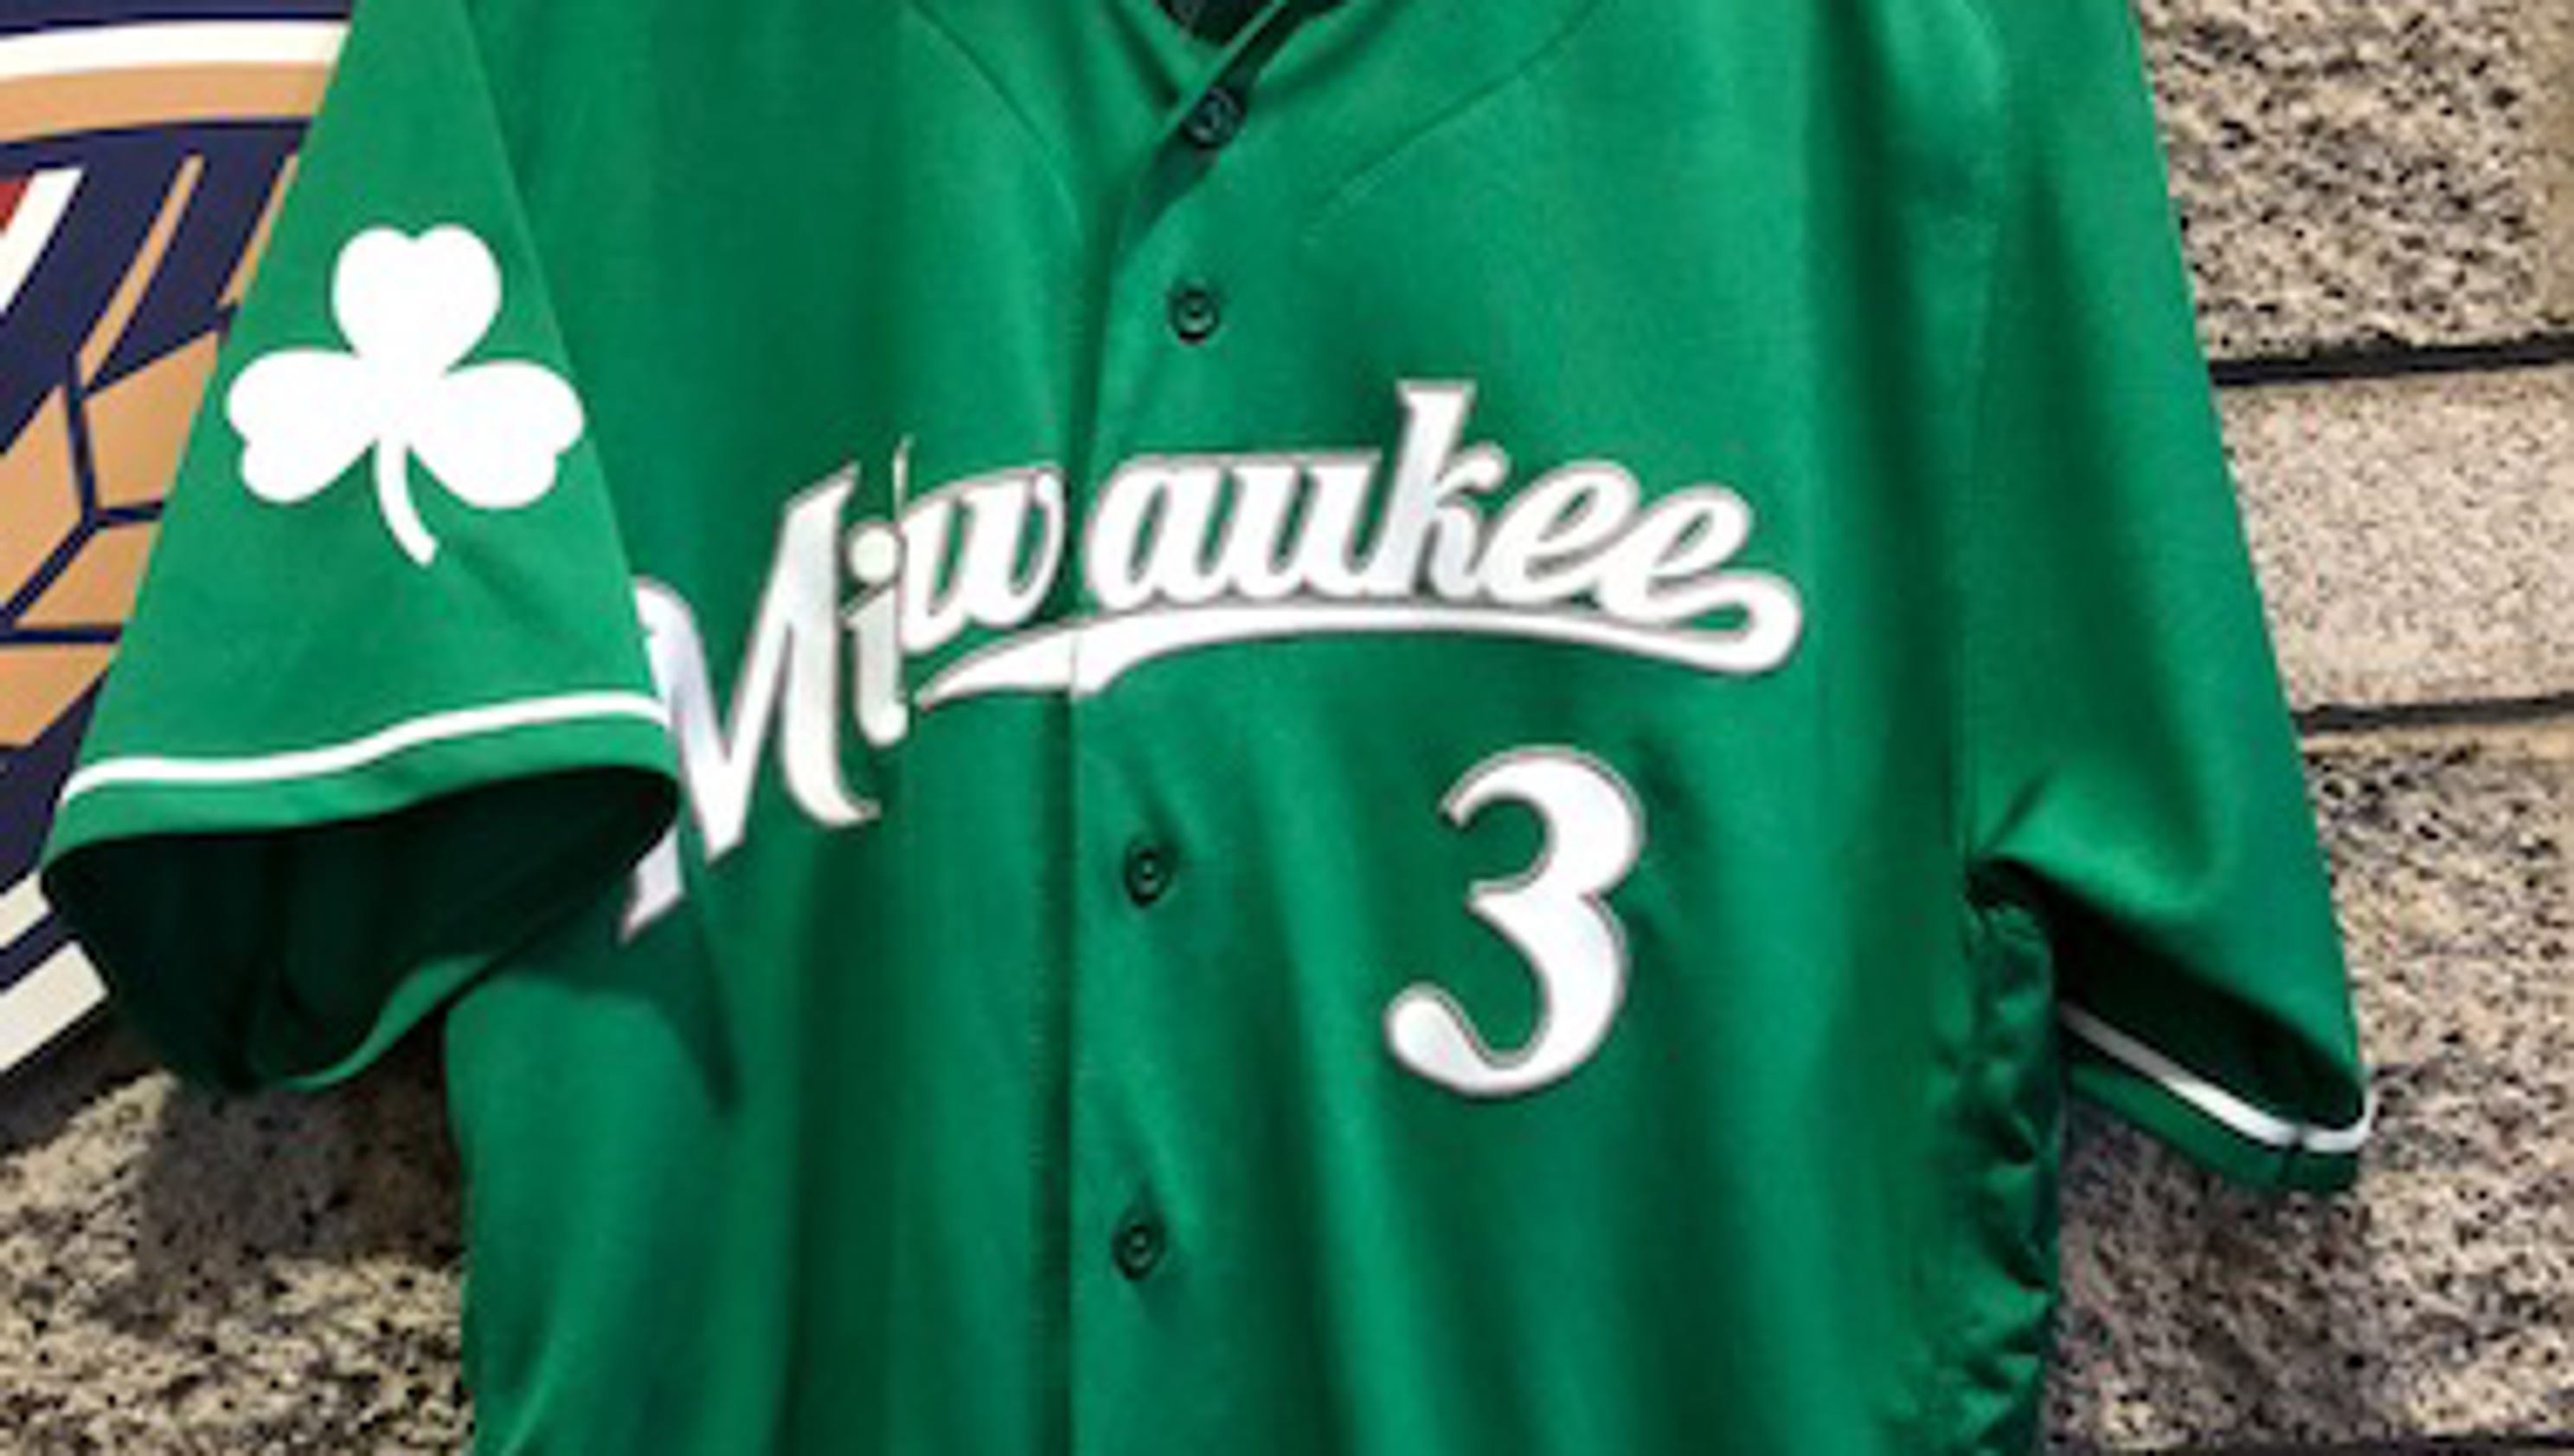 636568080679231873-brewers-green